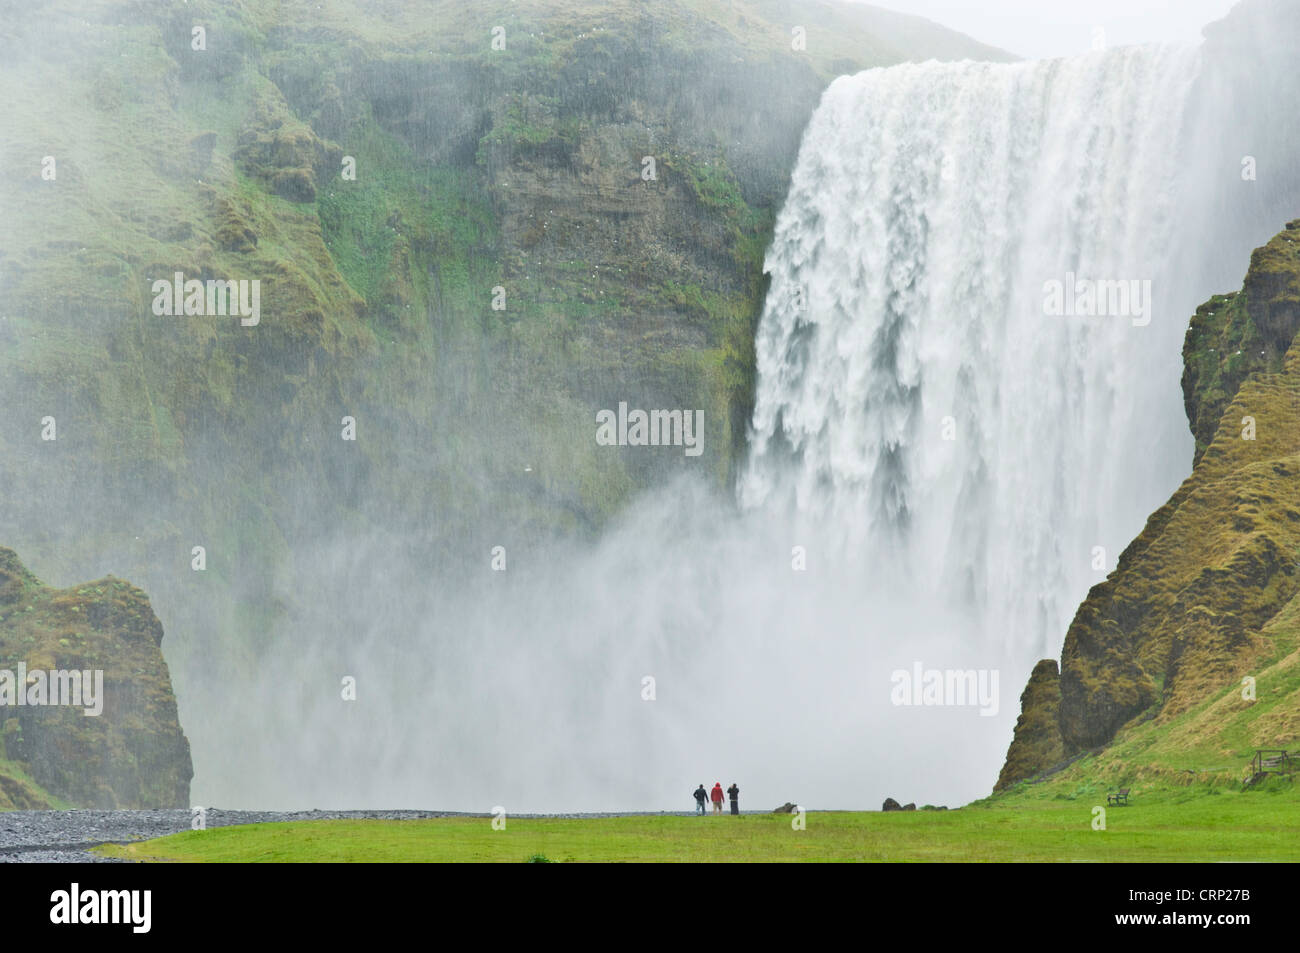 tourists stood in front of the powerful torrent of Skogafoss waterfall Skogar South Iceland EU Europe - Stock Image